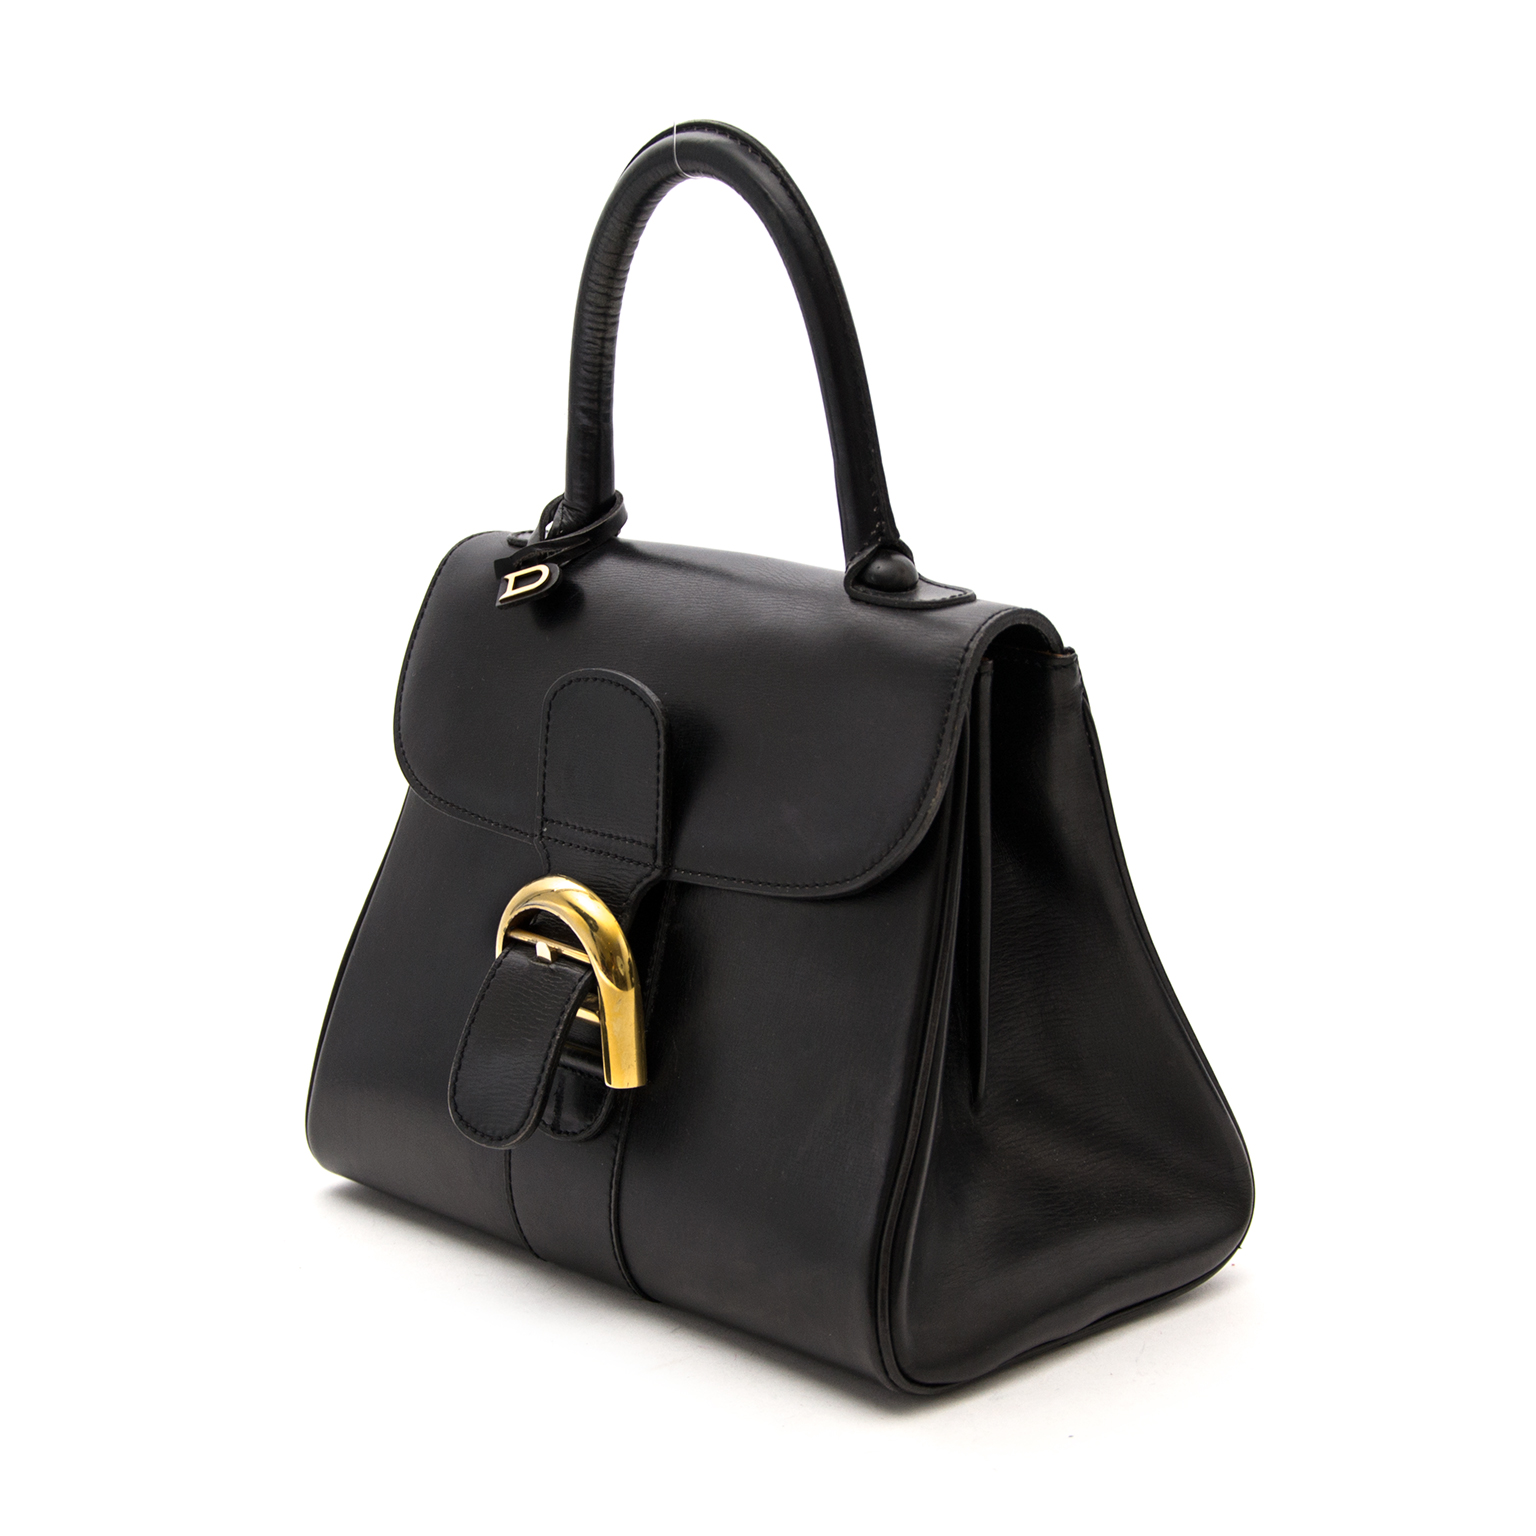 80c261755e Safe and secure online shopping Searching for the perfect Delvaux Brillant  handbag? We buy and sell your 100% authentic